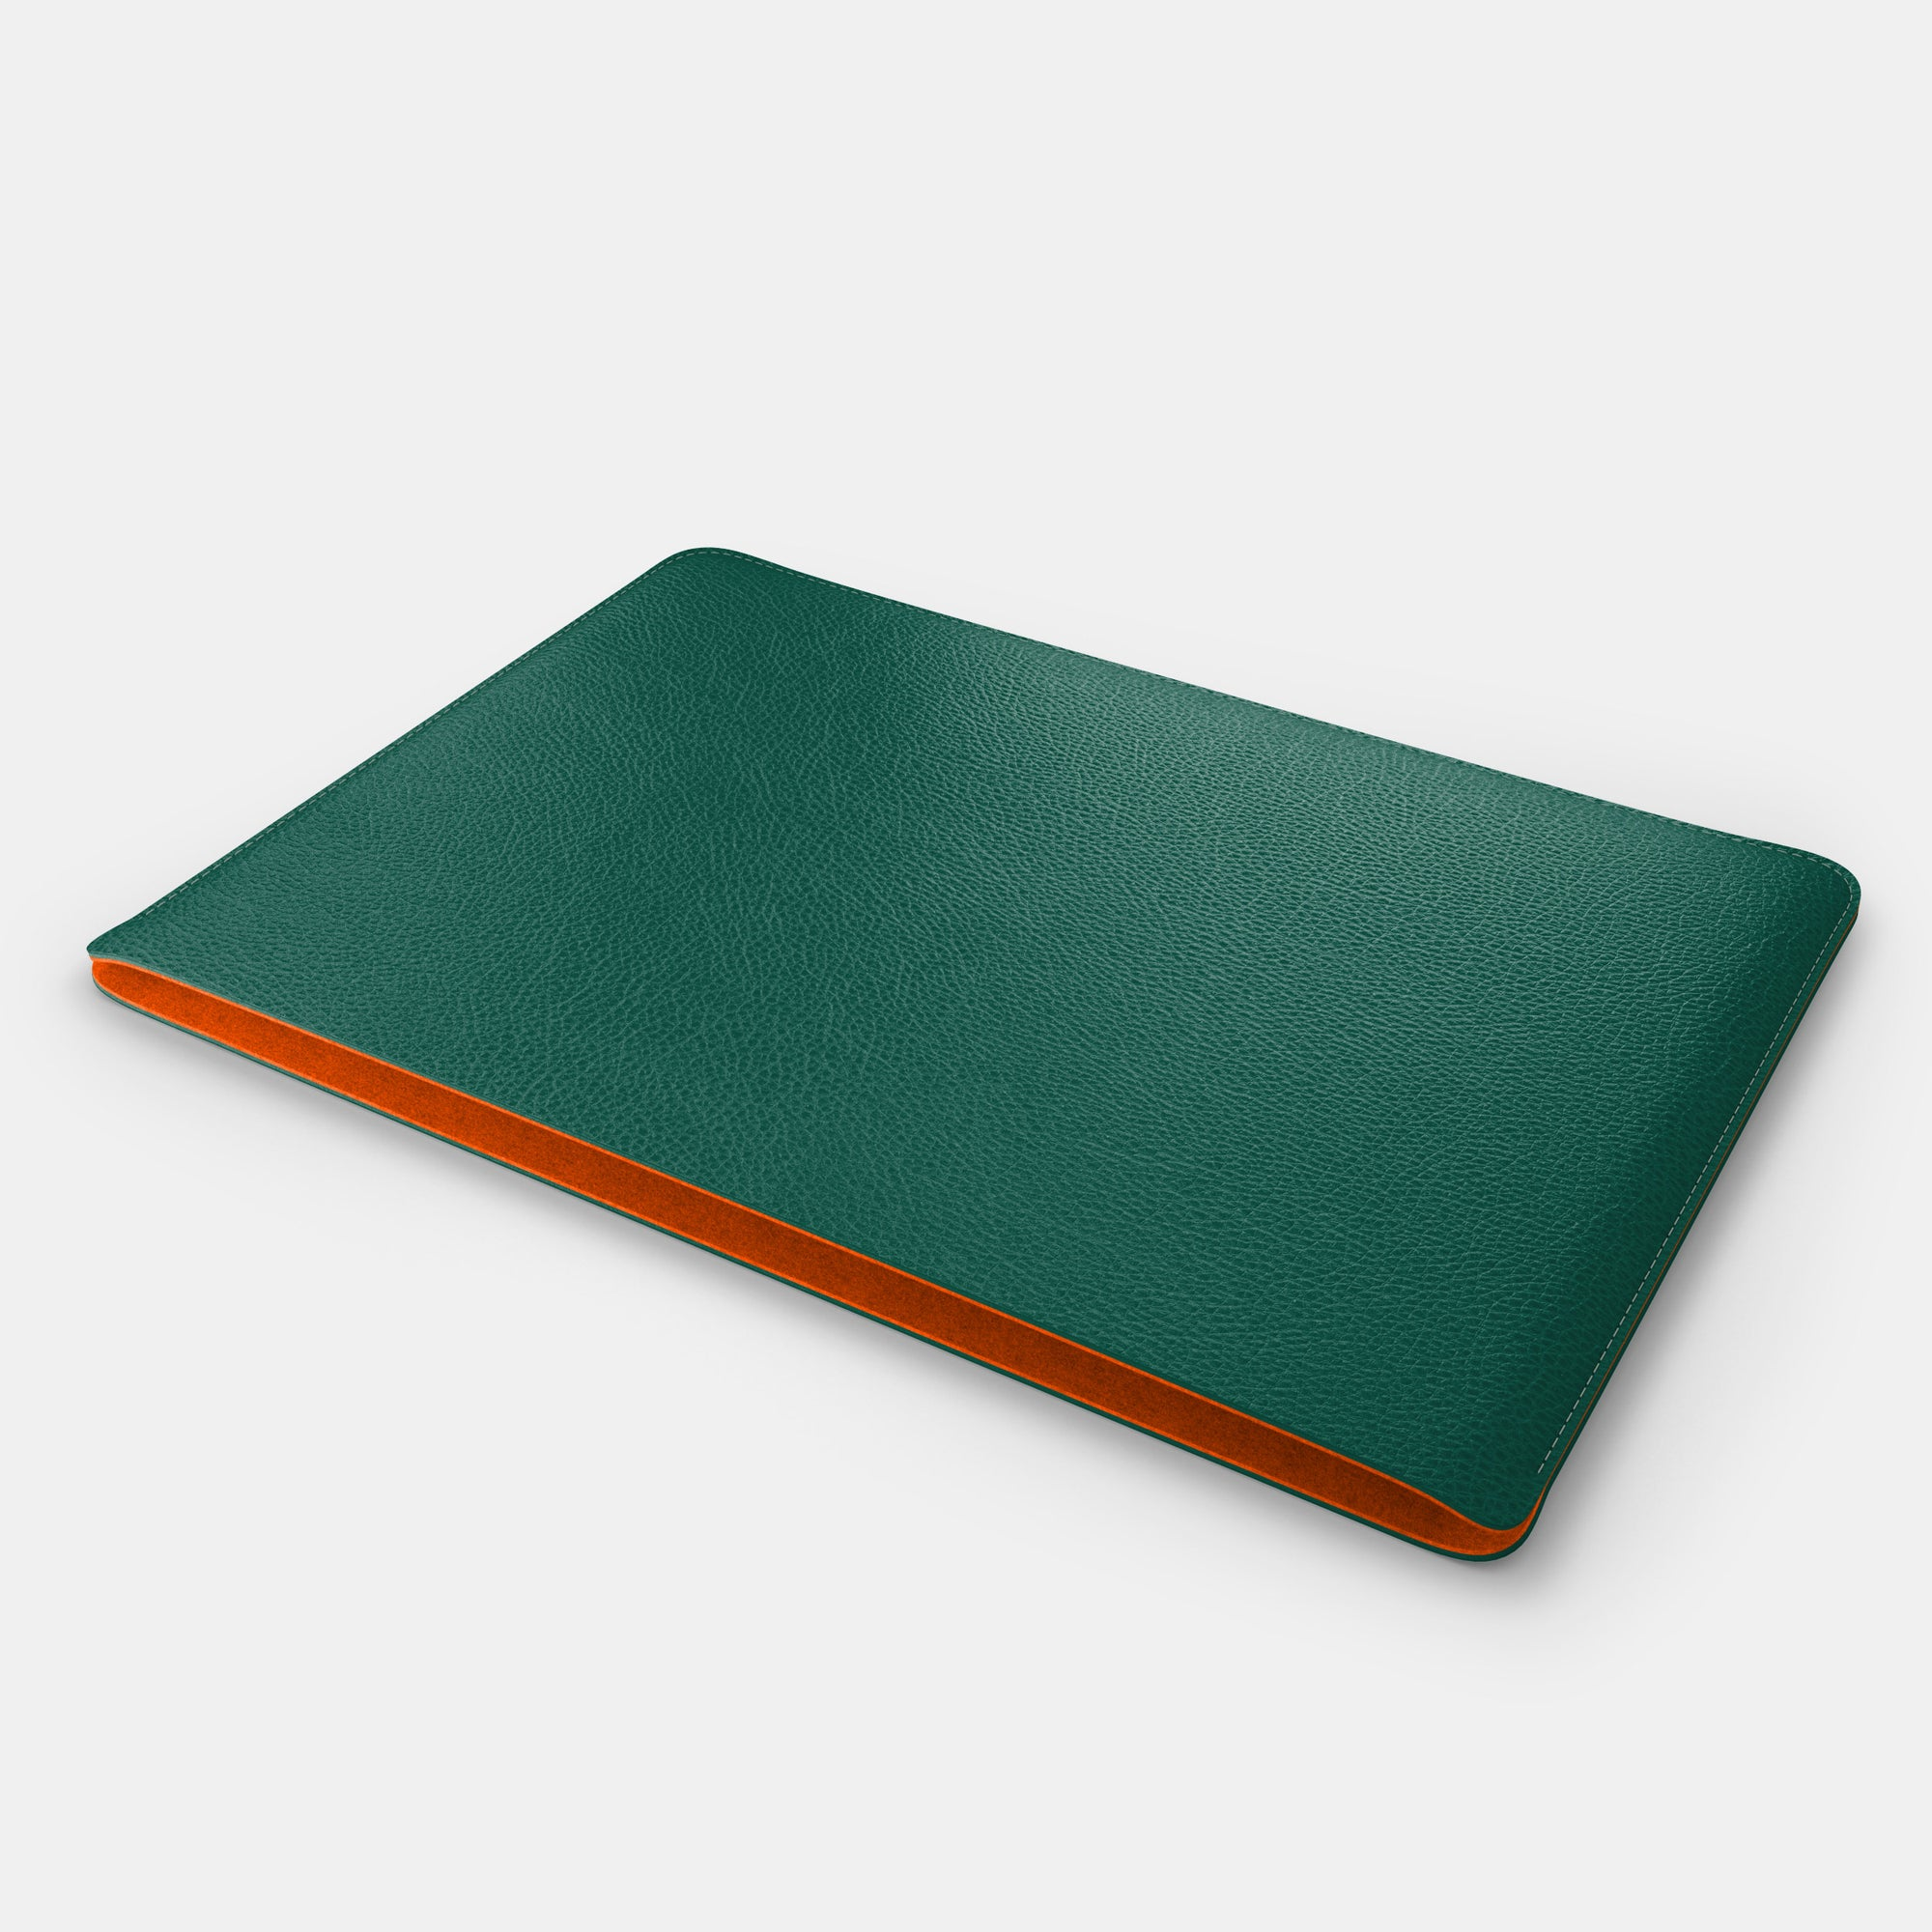 MacBook Laptop Sleeve - Avocado and Orange - RYAN London